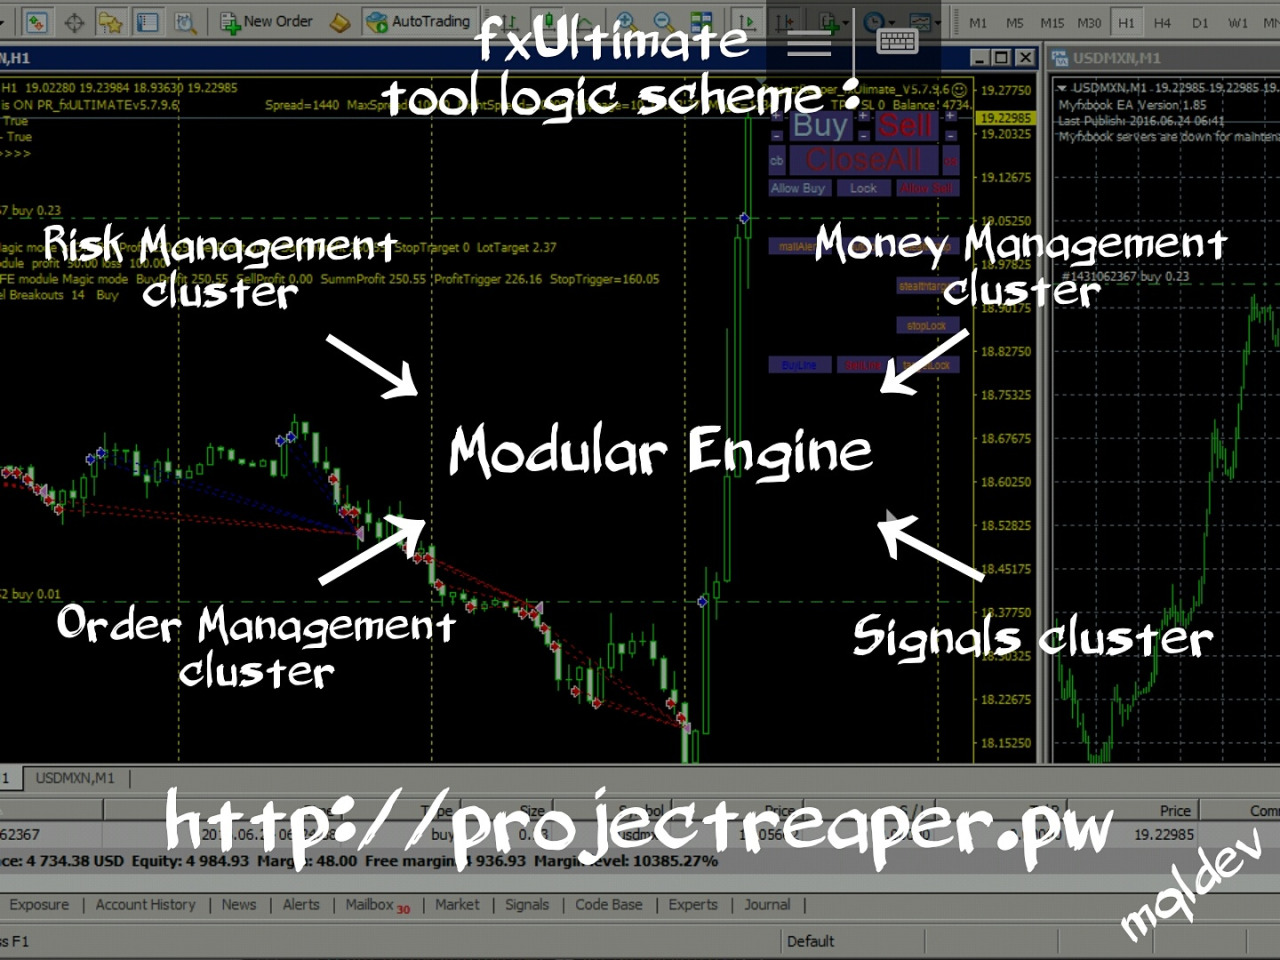 "ProjectReaper EA fxULTIMATE ➡Basic module Includes a license to conduct the work in a particular trading account and the base of the robot assembly including: {-HUD module, notification by email,sms.} {-interctive module trading from chart} {-a set of basic autolot modules (autolot, martingale, martini).} {-a set of basic modules for order management (market_execution, maxtrades filter and tradesperbar filter, maxspread filter, for fans of the night session trading filter nightspread, takeprofit, stoploss, stealth mode, breakeven and classic trailing stop based on points, reverse signals and close orders on opposite signal).} {-time filter and tradefriday filter.} Your copy of the robot will be linked to a particular trading account number and one demo account for forward testing, but will be free to be tested in the strategy tester for the selection of your best options and determine the optimal size of the MM for your deposit. Expansion modules to extend the logic of the robot: ➡BASKET TRADING Module {The module works with baskets of orders, if active, when the signal at the input to the other modules, opens up a basket for currency instruments designated by the user in the settings module also features a reverse setting for cross pairs and suffix option.} Money Management: ➡ForexKillerPRO Module {The module in real-time manage open orders, two modes of operation 1- for a global loss or profit on the trading account 2 -by the total profit or loss orders with Magic number of robot. The module calculates the lot size on the basis of profit and loss and user-defined stop loss in pips. Optimal use with the PROFITSAFE module/ Serves to disperse the tactics for the exit from the drawdown, in the case of loss and trade with unbalanced positive locks for profit boosting without risk. It can be used for semi-automatic and auto trading.} Order management: ➡Trailing by PSAR Module {Trailing stop by Parabolic SAR. Multi timeframe/multicurrency} ➡Trailing by Fractals Module {Trailing stop by Fractals. Multi timeframe/multicurrency} ➡Trailing by Candles Module {Trailing stop by Candles. Multi timeframe/multicurrency} ➡Trailing by MA Module {Trailing stop by Moving Average line. Multi timeframe/multicurrency} ➡Basket Percent Module {The module close the all orders and delete pending orders(by magic number) at the profit or loss on the trade account, specified as a percentage by the user.} ➡PBM Module {The module close the all orders with magic number of robot, when the total profit on these orders specified by the user in the currency trading account} ➡PLBMPO Module {The module close the order with magic number of robot, when the profit or loss specified by the user in the currency trading account for each order separately} ➡RM Module {Risk Management module calculated the loss and the profit on the trading account, with magic number of robot activation of one of the four triggers (trading account balance has become more than the trigger level, the balance of the trading account is smaller trigger level, equity on trading account become more then the trigger level; equity is smaller then trigger level), trigger value specified in the currency trading account, triggers can be combined. For ease of understanding, the module can trigger conditionally designated as stop loss and take profit on the balance and equity. Example: close all orders if the balance will be more then $ 500 and limit losses if the equity fall below $ 450 When the trigger is activated, closing orders and the module is deactivated for the restart, open the properties of an expert in the terminal, and click OK} ➡PROFIT SAFE Module {Profit safe module operates in two modes, 1-calculation of the global profit / loss of the trading account and 2-calc of the total loss/profit of orders with magic number of robot. The user sets the levels of currency trading account (there are 10), when the profit of the trigger level, set a limit on the loss from current earnings, while increasing the value of earnings in the account are activated following levels safe, as long as the triggered stop level. Example: you have the first trigger profit of $ 10 with a stop at $ 5 each subsequent step is increased by $ 5. You open orders and profit comes to $ 30, activated safety deposit $ 30 / stop25 $ profit down to $ 25, and orders are closed on profit $25 parallel you could trade, say on trendlines with another magic number, profit safe would work with a profit on the open positions magic number with his number and would not touch the rest of the order} ➡BVEQuity Module {The module works with any indicator of the balance / equity, for example: Equity Balance indicator, you draw a trend line TakeProfit and StopLoss in the indicator window, at the intersection graph of equity of the trendline, closing orders with magic number of robot. This graphical counterpart trailing stop by loss and profit} Signal modules for entry into the market: {Each module is a filter when you activate several modules, all must show the signal in the right direction for the validation signal} ➡TRENDLINES Module {TRENDLINES Module, open / close orders when the price crosses the trend line. The names of the lines are set free, six lines (open orders, stop-loss and take profit for long and short) If the price crosses the trendline, the trigger is activated and the line is removed from the chart. It can operate in manual mode and auto trade. For automated trading, set on the chart any indicator of trendlines, such as ""TD Fractal connector"" and the module list set the names of the trendlines in the settings of the robot, in the case of ""TD Fractal connector"" – buy ""HL_1"" sale ""LL_1""} ➡HEDGE_TIME Module {The module opens opposite order at the trigger time, without considering other modules also present setting stop out (stop open orders for the loss by equity as a percentage of balance), this module is ideal for hedge strategies to bursts of volatility in the market, trade both sides} ➡MA CROSSING Module {Crossing moving averages module gives a signal when fastMA cross slowMA, there are settings as alines, and their timeframes, for example, the M15 and the H1 timeframes crossing} ➡CCI Module {CCI Module gives a signal when pair is overbought or oversold. The reverse option, the offset adjustment, levels zones, working timeframe} ➡RSI Module {RSI Module gives a signal when pair is overbought or oversold. The reverse option, the offset adjustment, levels zones, working timeframe} ➡CCI/RSI CROSSING Mode {The module processes the intersection of modules of CCI and RSI.} ➡Fast Heiken Ashi Module {The module gives a signal on value of the indicator Heiken Ashi (blue-bye, Red-Cell) Private option of closing open orders when the opposite signal. Reverse option, offset, working timeframe} ➡HEIKEN ASHI SMOOTHED Module {The average of the two module Heiken Ashi, gives a signal if the indicator is a fastHA higher/lower slowHA, or separate option only handle their crossing. The reverse option, the working timeframe} ➡STOCHASTIC Module {The module Stochastic oscillator gives a signal when pair in the overbought / oversold conditions, and have the option of crossing the signal line and the main indicator in the trigger, setting the zone level, reverse option, offset, working timeframe} ➡HEIKEN ASHI SMOOTHED F Up/Down Module {The average of the two module Heiken Ashi gives a signal on value Heiken Ashi indicator (blue-long, Red-short. The reverse option, offset, working timeframe} ➡PARABOLIC SAR F Module {Parabolic Sar module gives a signal when the price is above / below the indicator. Reverse option, offset, working timeframe} ➡MA F Rising/Falling module {Moving average module gives a signal in two modes 1-at the rise or fall the MA 2-if the price is above or below the MA . Reverse option, offset, working timeframe.} ➡BASKET MTMC Direction Filter {Multi timeframe multi-currency module is designed for open orders by core5 and core12-2 baskets, but can be used for any other signal filtering. The main advantage of the module – the five filters signals from any charts and timeframes (charts there is no need to keep open only for visual control). Full control settings, all parameters MA, filter timeframe, any currency pair, offset relative to the current bar, the depth filtration in bars, reverse signal of each of the filters. You can analyze multiple timeframes one instrument (for example, trend direction on the hour/ daily chart and the entry of the M5-M15 timeframe), and track the movement of the main currency pairs and crosses, free combination of signals of any five filters in one module. Enjoy it.}"